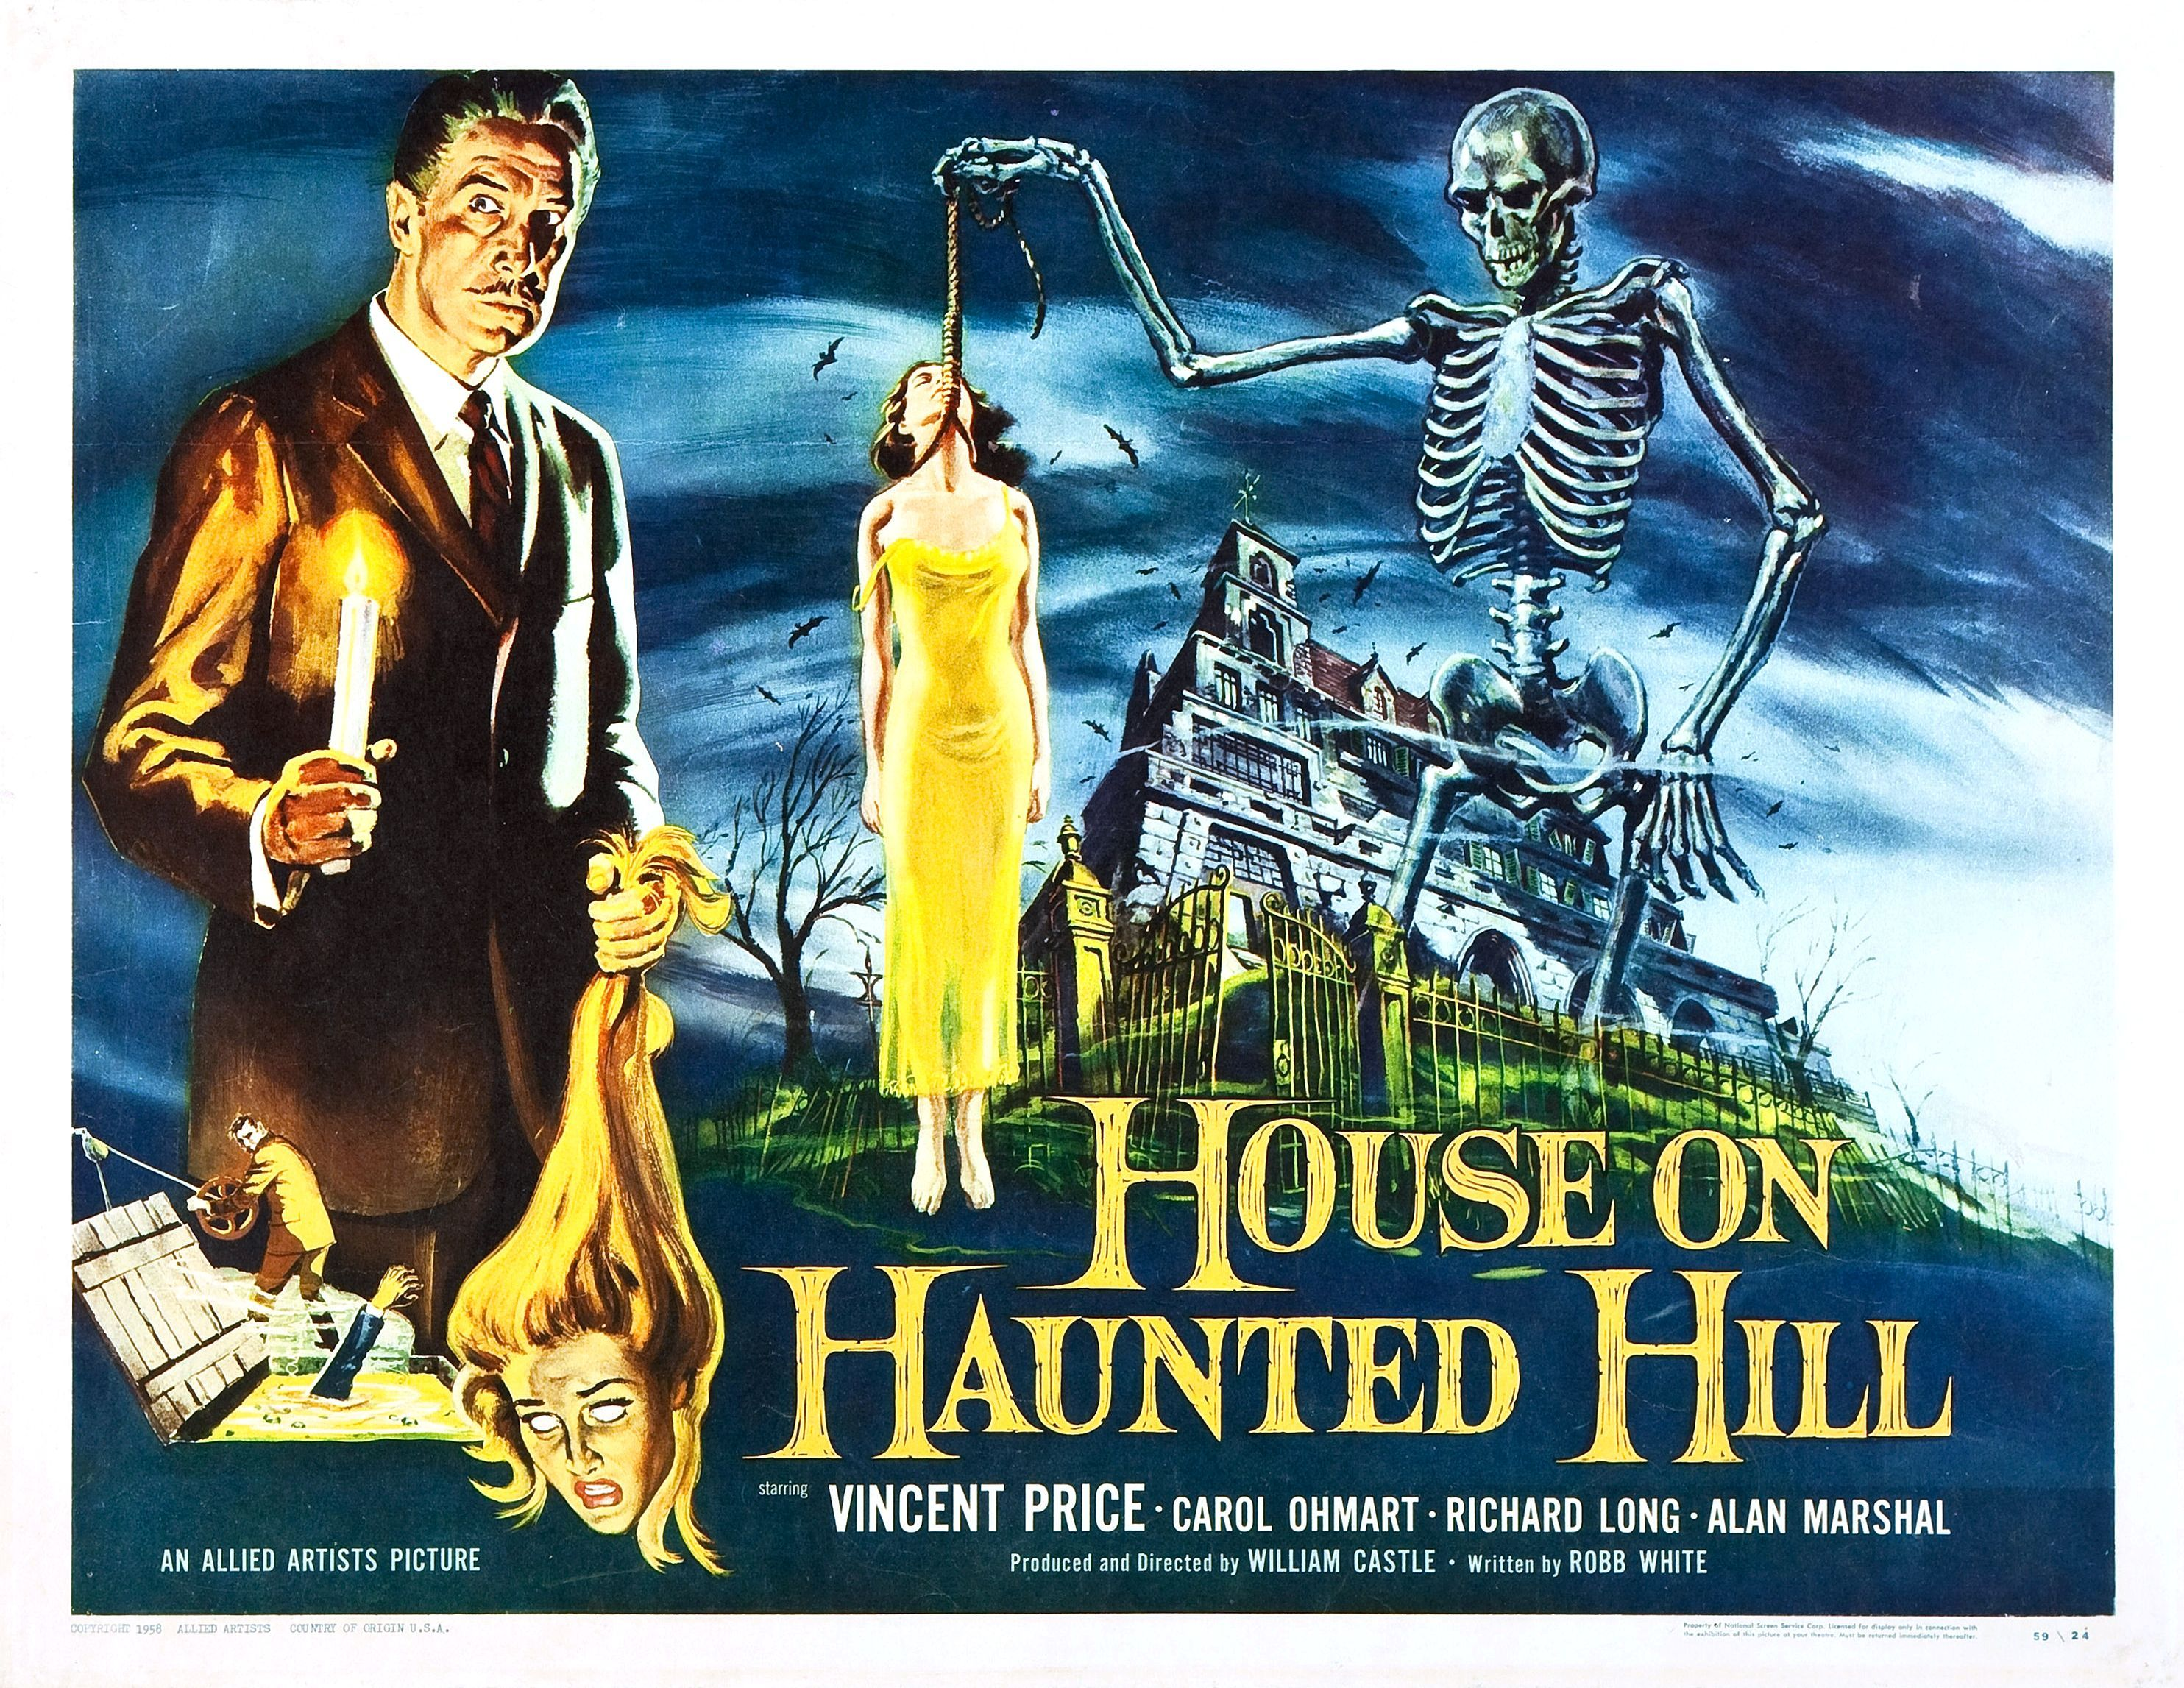 The House on Haunted Hill has a solid favorite. I